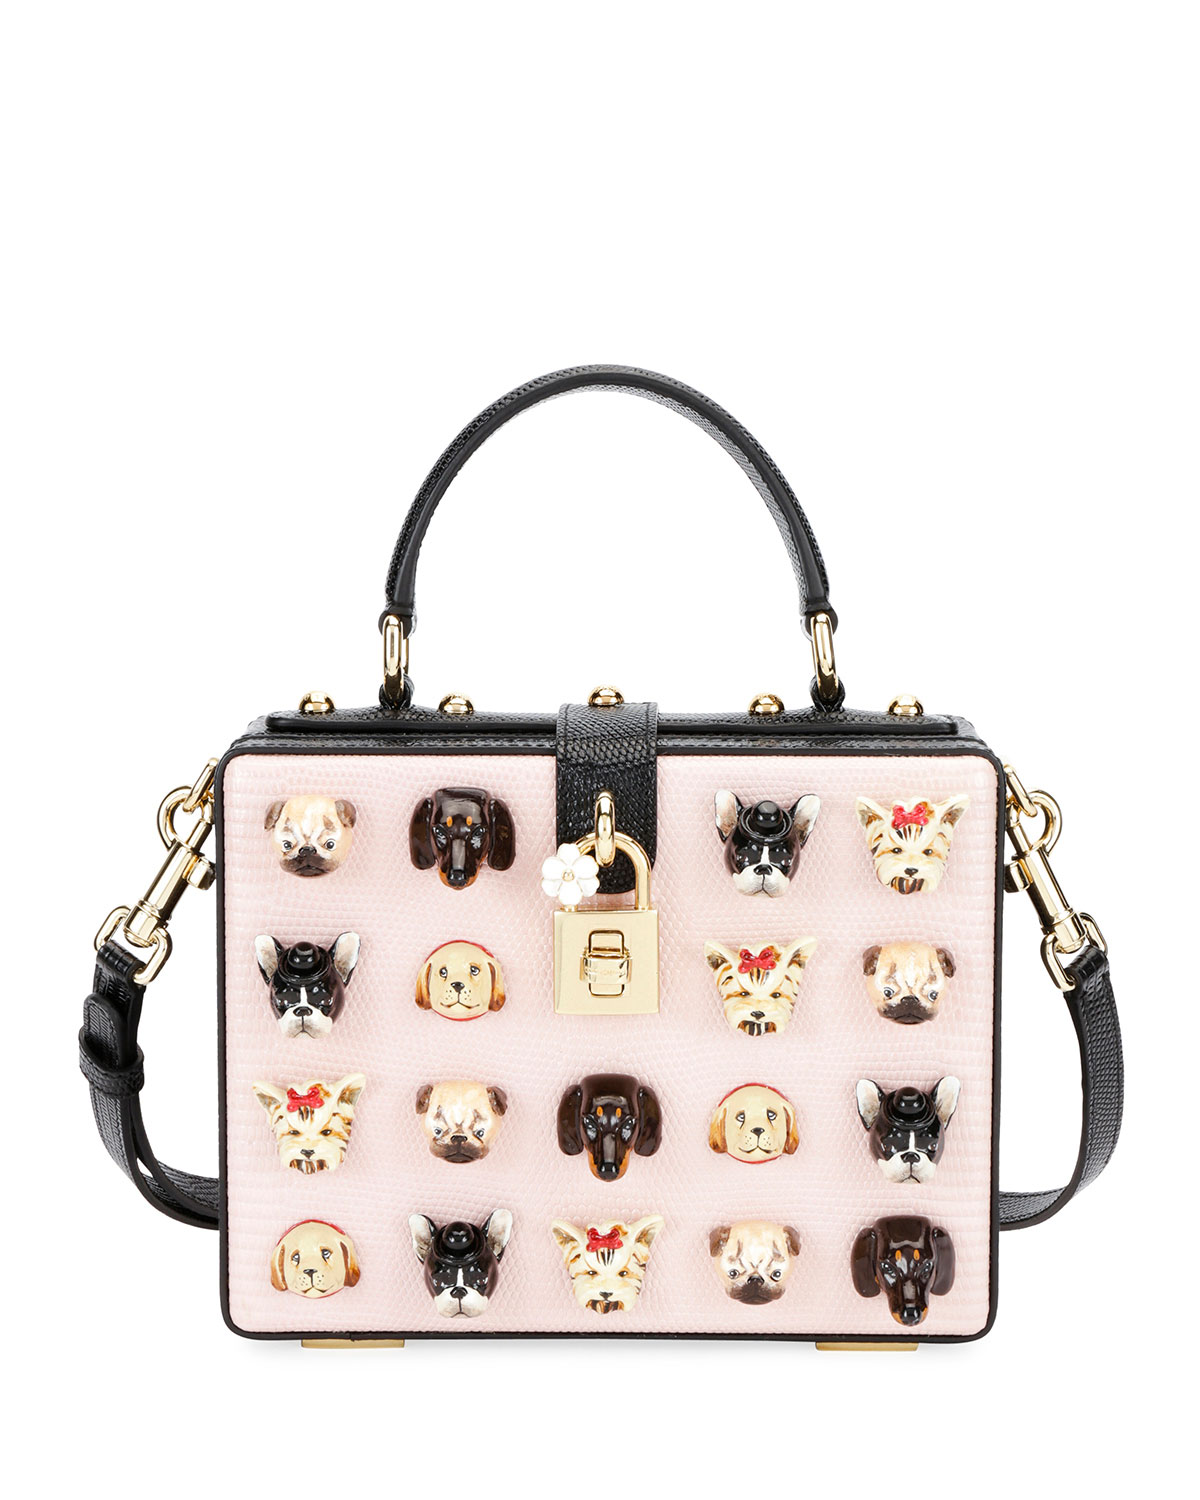 0e86621f373 Dolce   Gabbana Dolce Box Puppies! Shoulder Bag